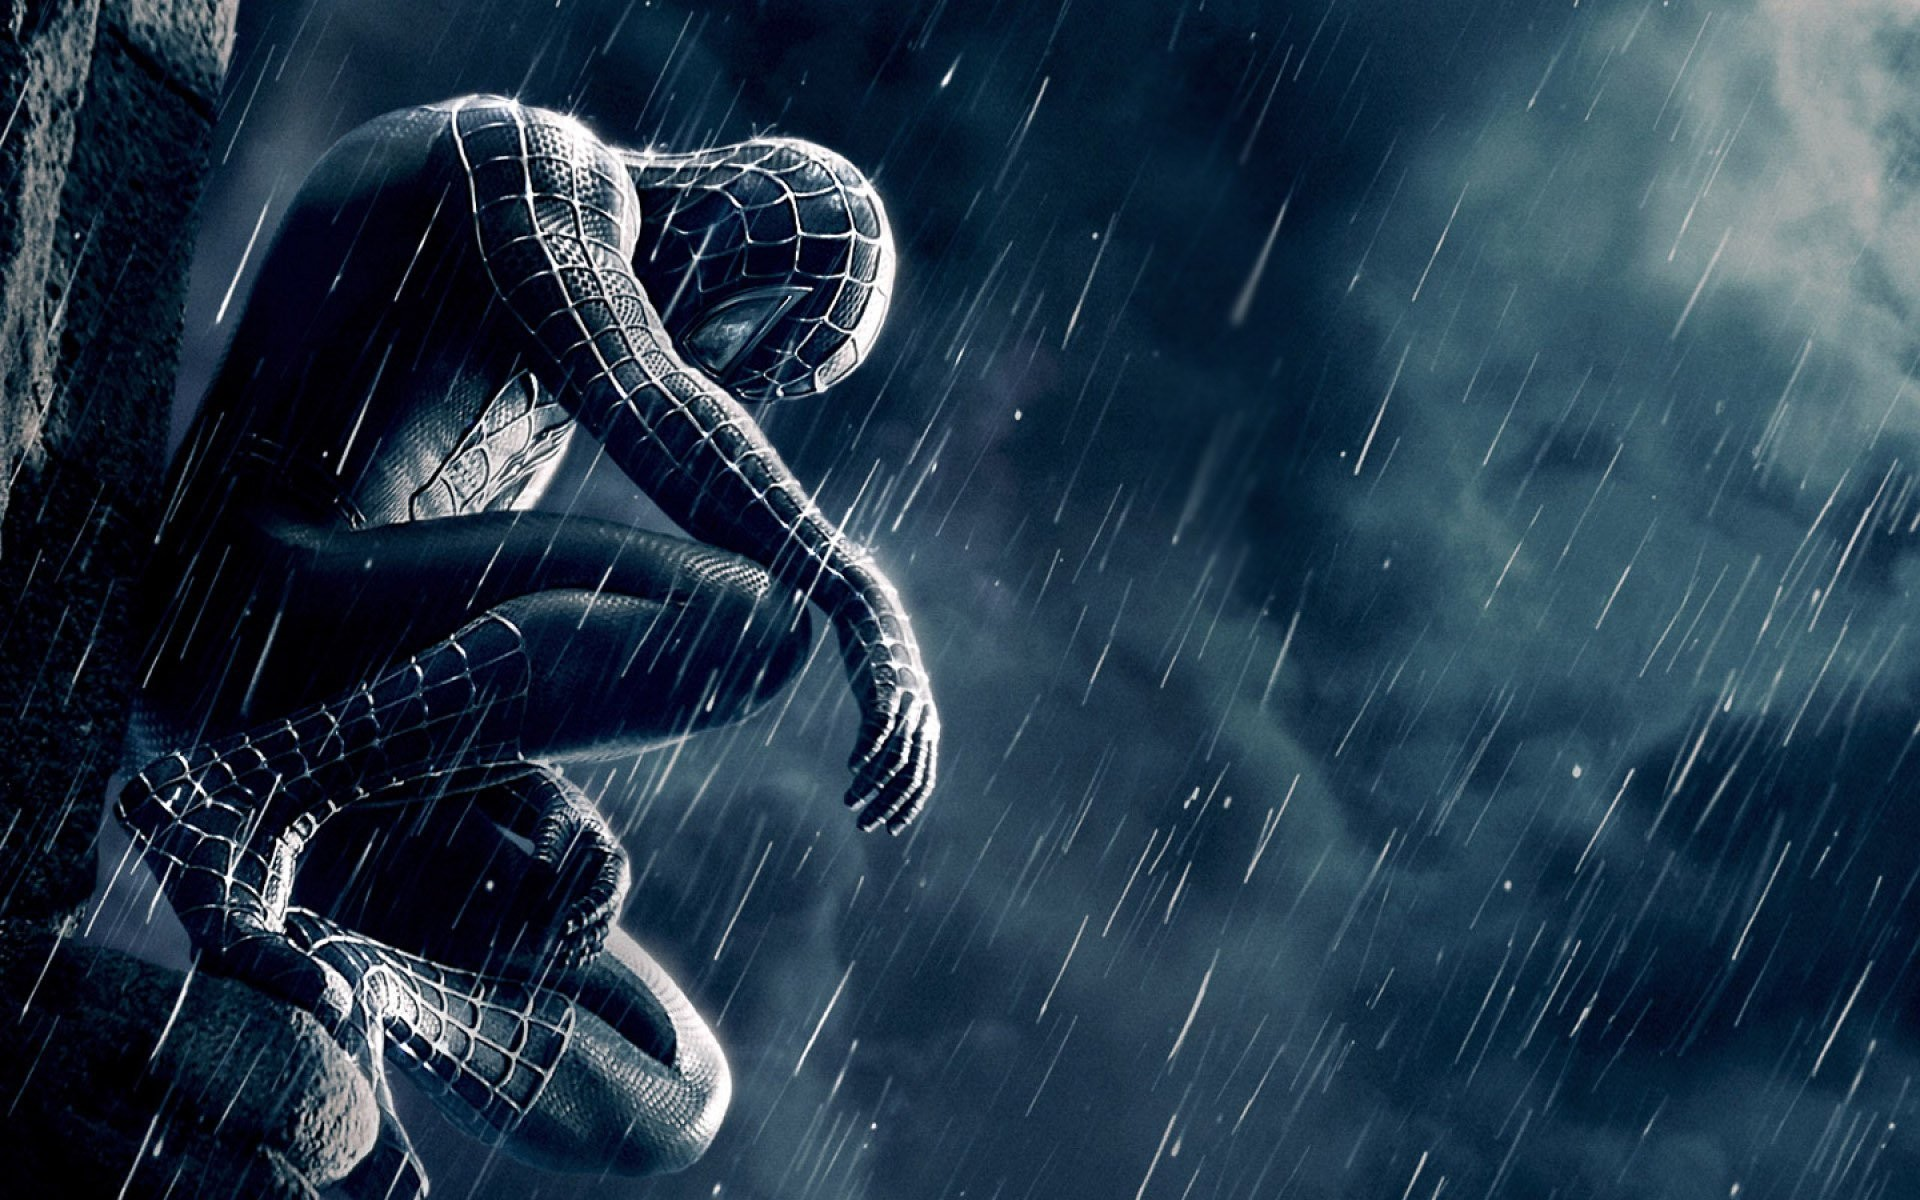 Spiderman wallpaper hd download free hd wallpapers for - Moving spider desktop ...